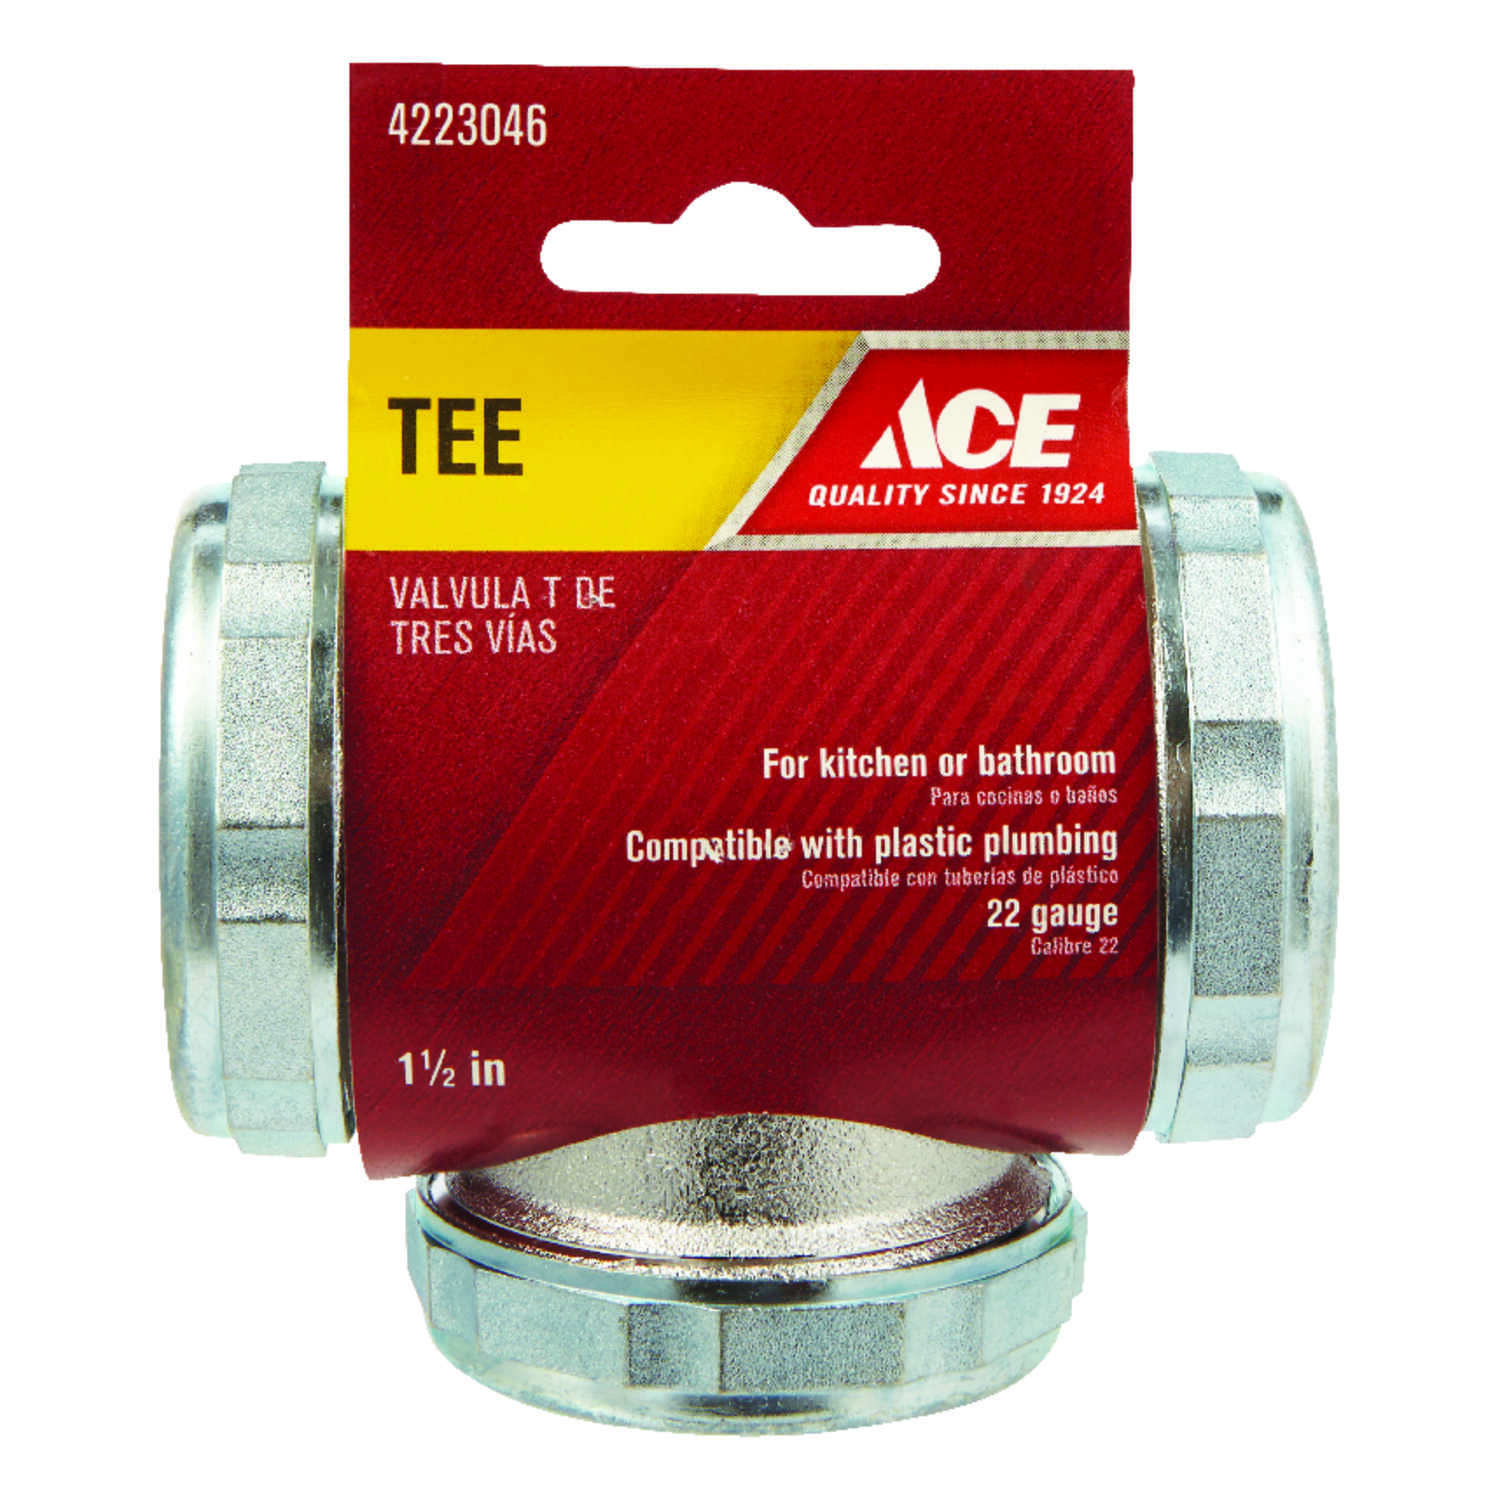 Ace  1-1/2  Dia. x 1-1/2  Dia. x 1-1/2 in. Dia. Slip To Slip To Slip  Chrome Plated  Brass  Tee